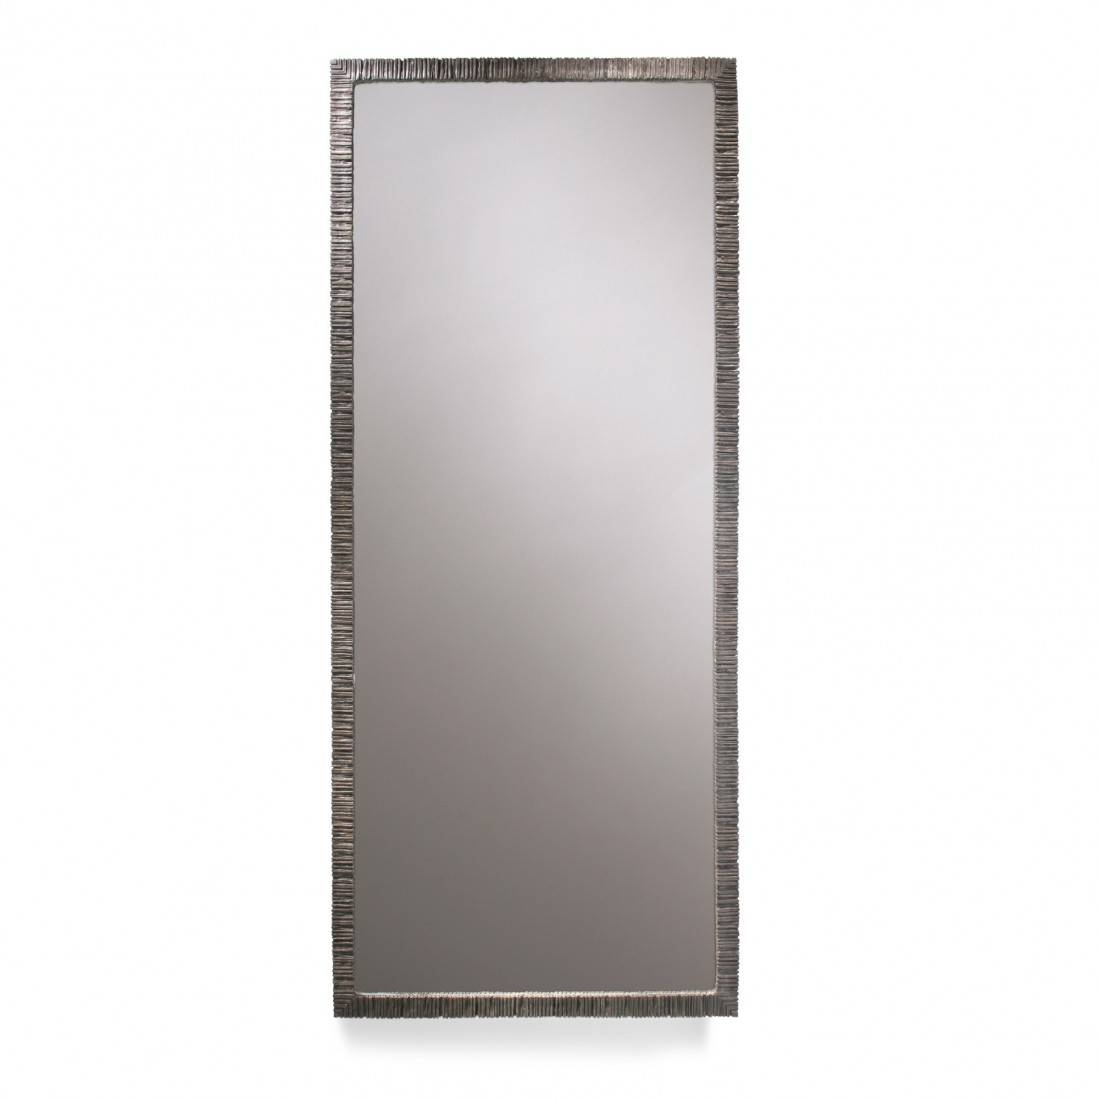 Large Rectangular Trevose Mirror | Wm31L | Mirrors, Mirror | Porta with regard to Large Metal Mirrors (Image 8 of 15)